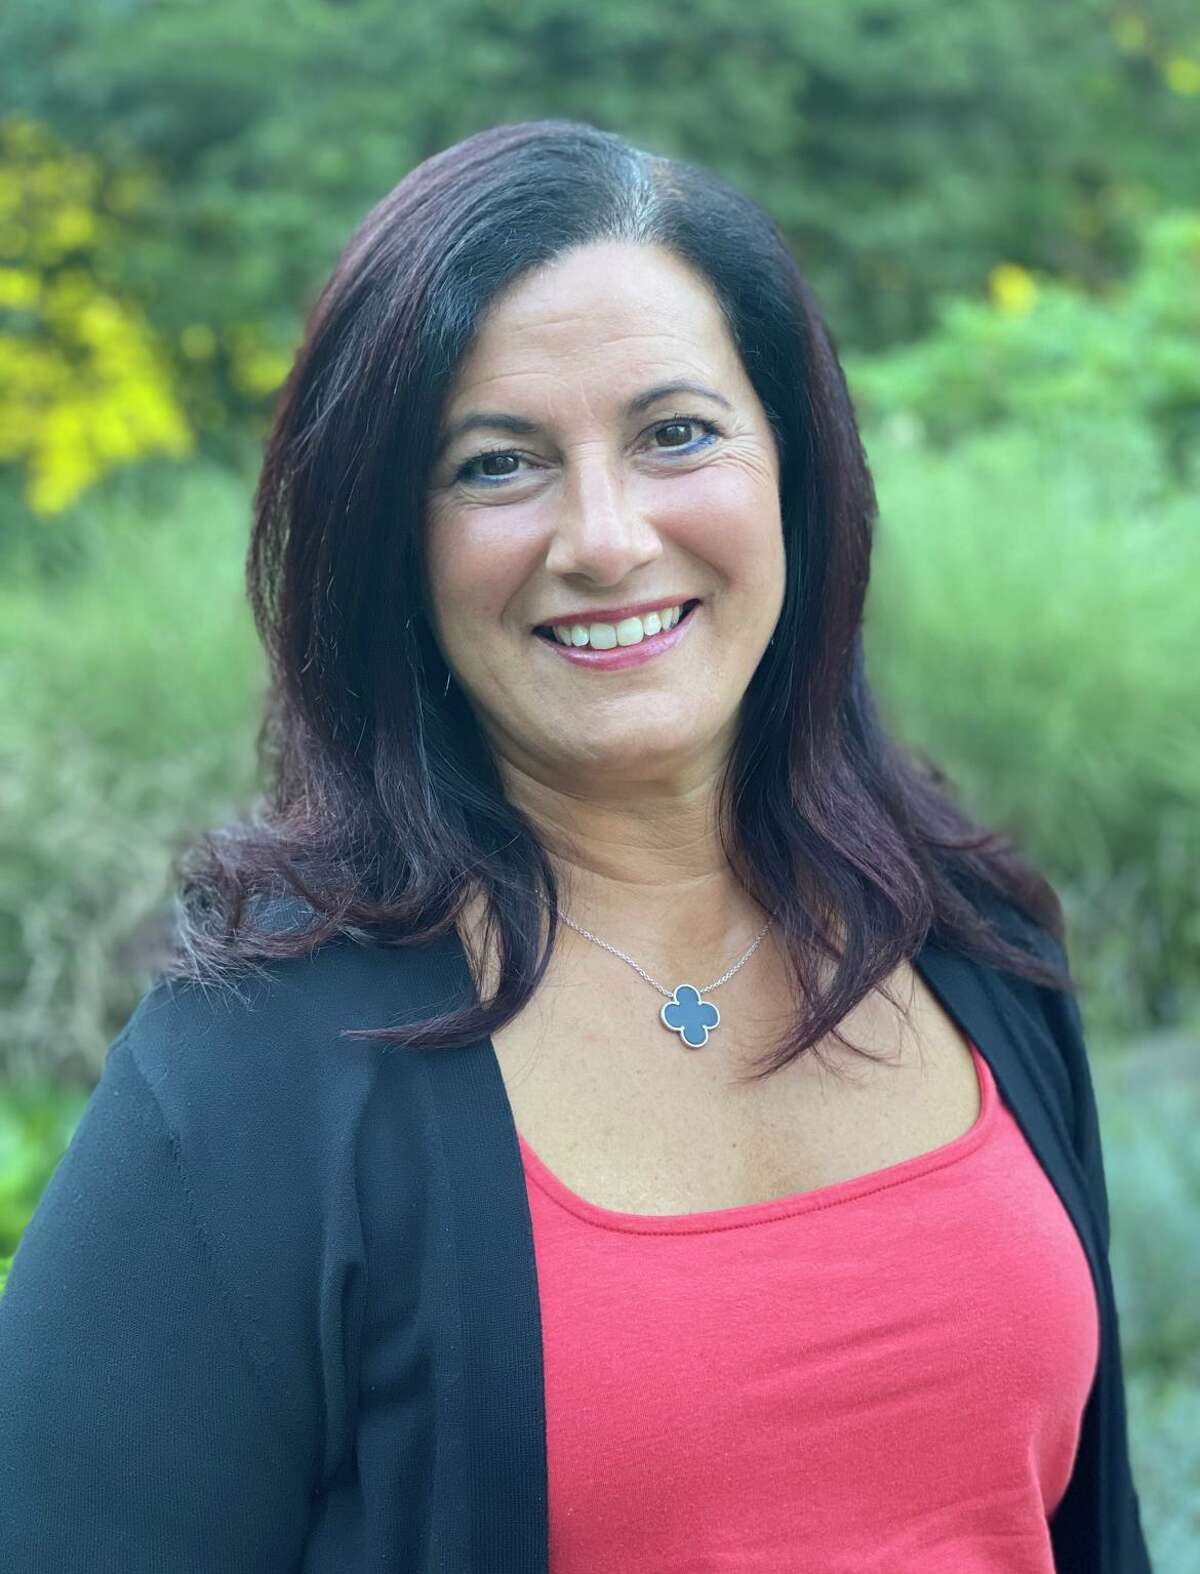 The Center Stage Theatre in Shelton has announced the appointment of Carla Supersano Sullivan as the theatre's Managing Director, bringing theatre, philanthropic and community experience to the organization. Sullivan is pictured.